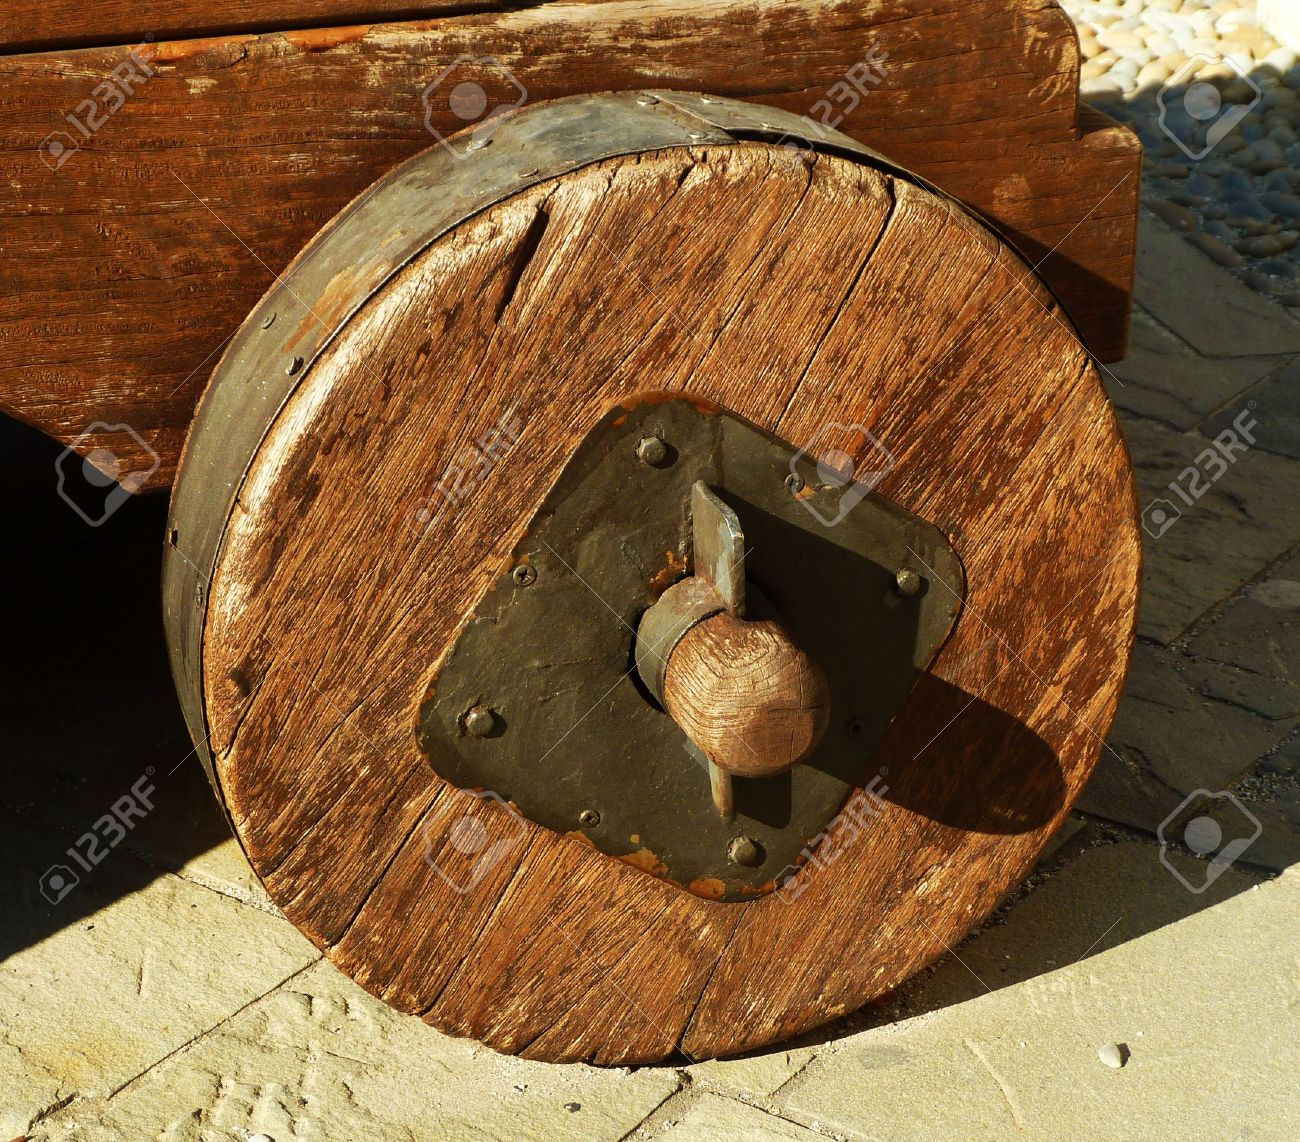 Reproduction antique wooden wheel Stock Photo - 17968297